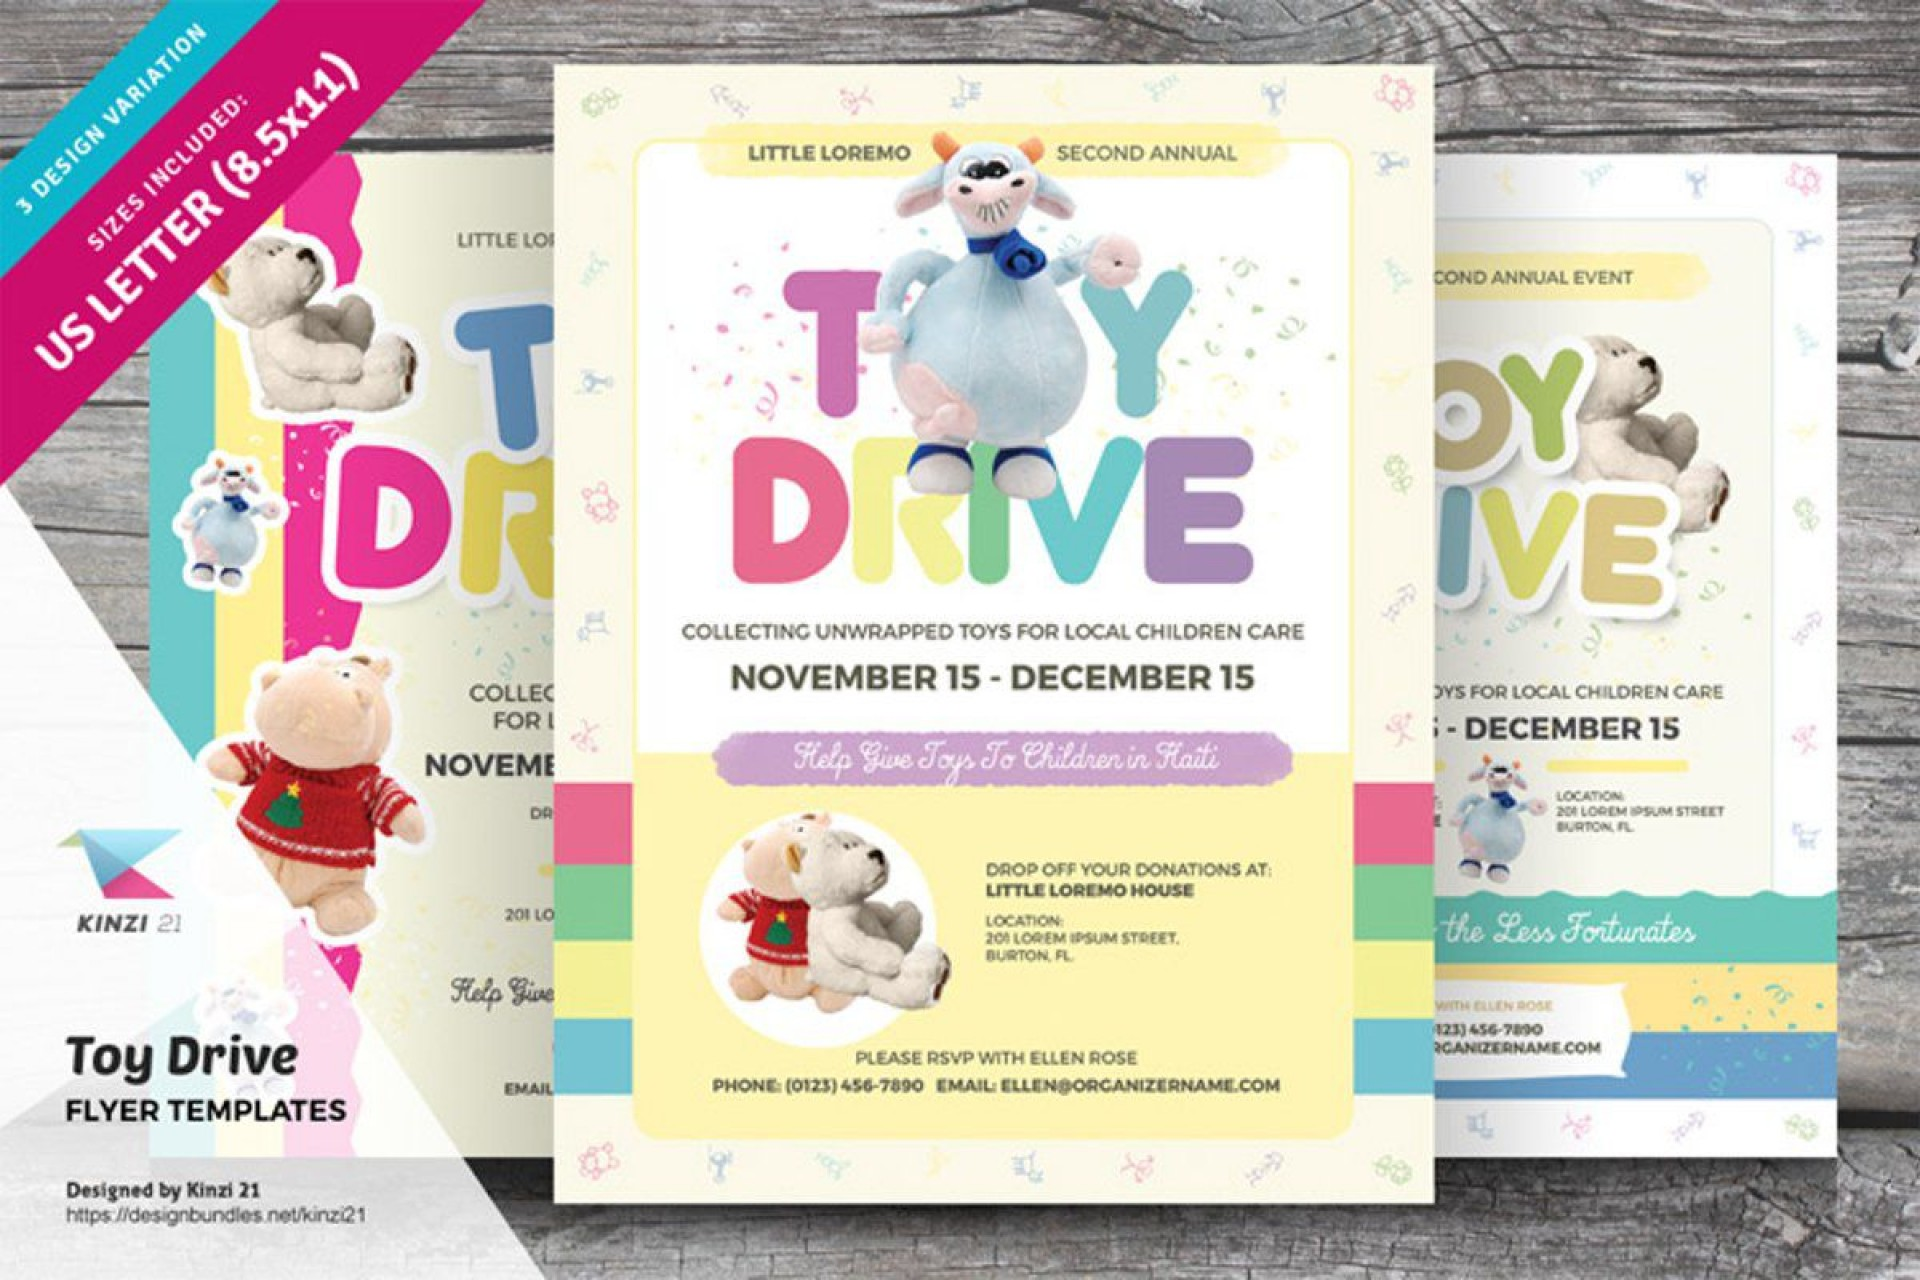 002 Incredible Toy Drive Flyer Template Picture  Holiday Download Free Word1920